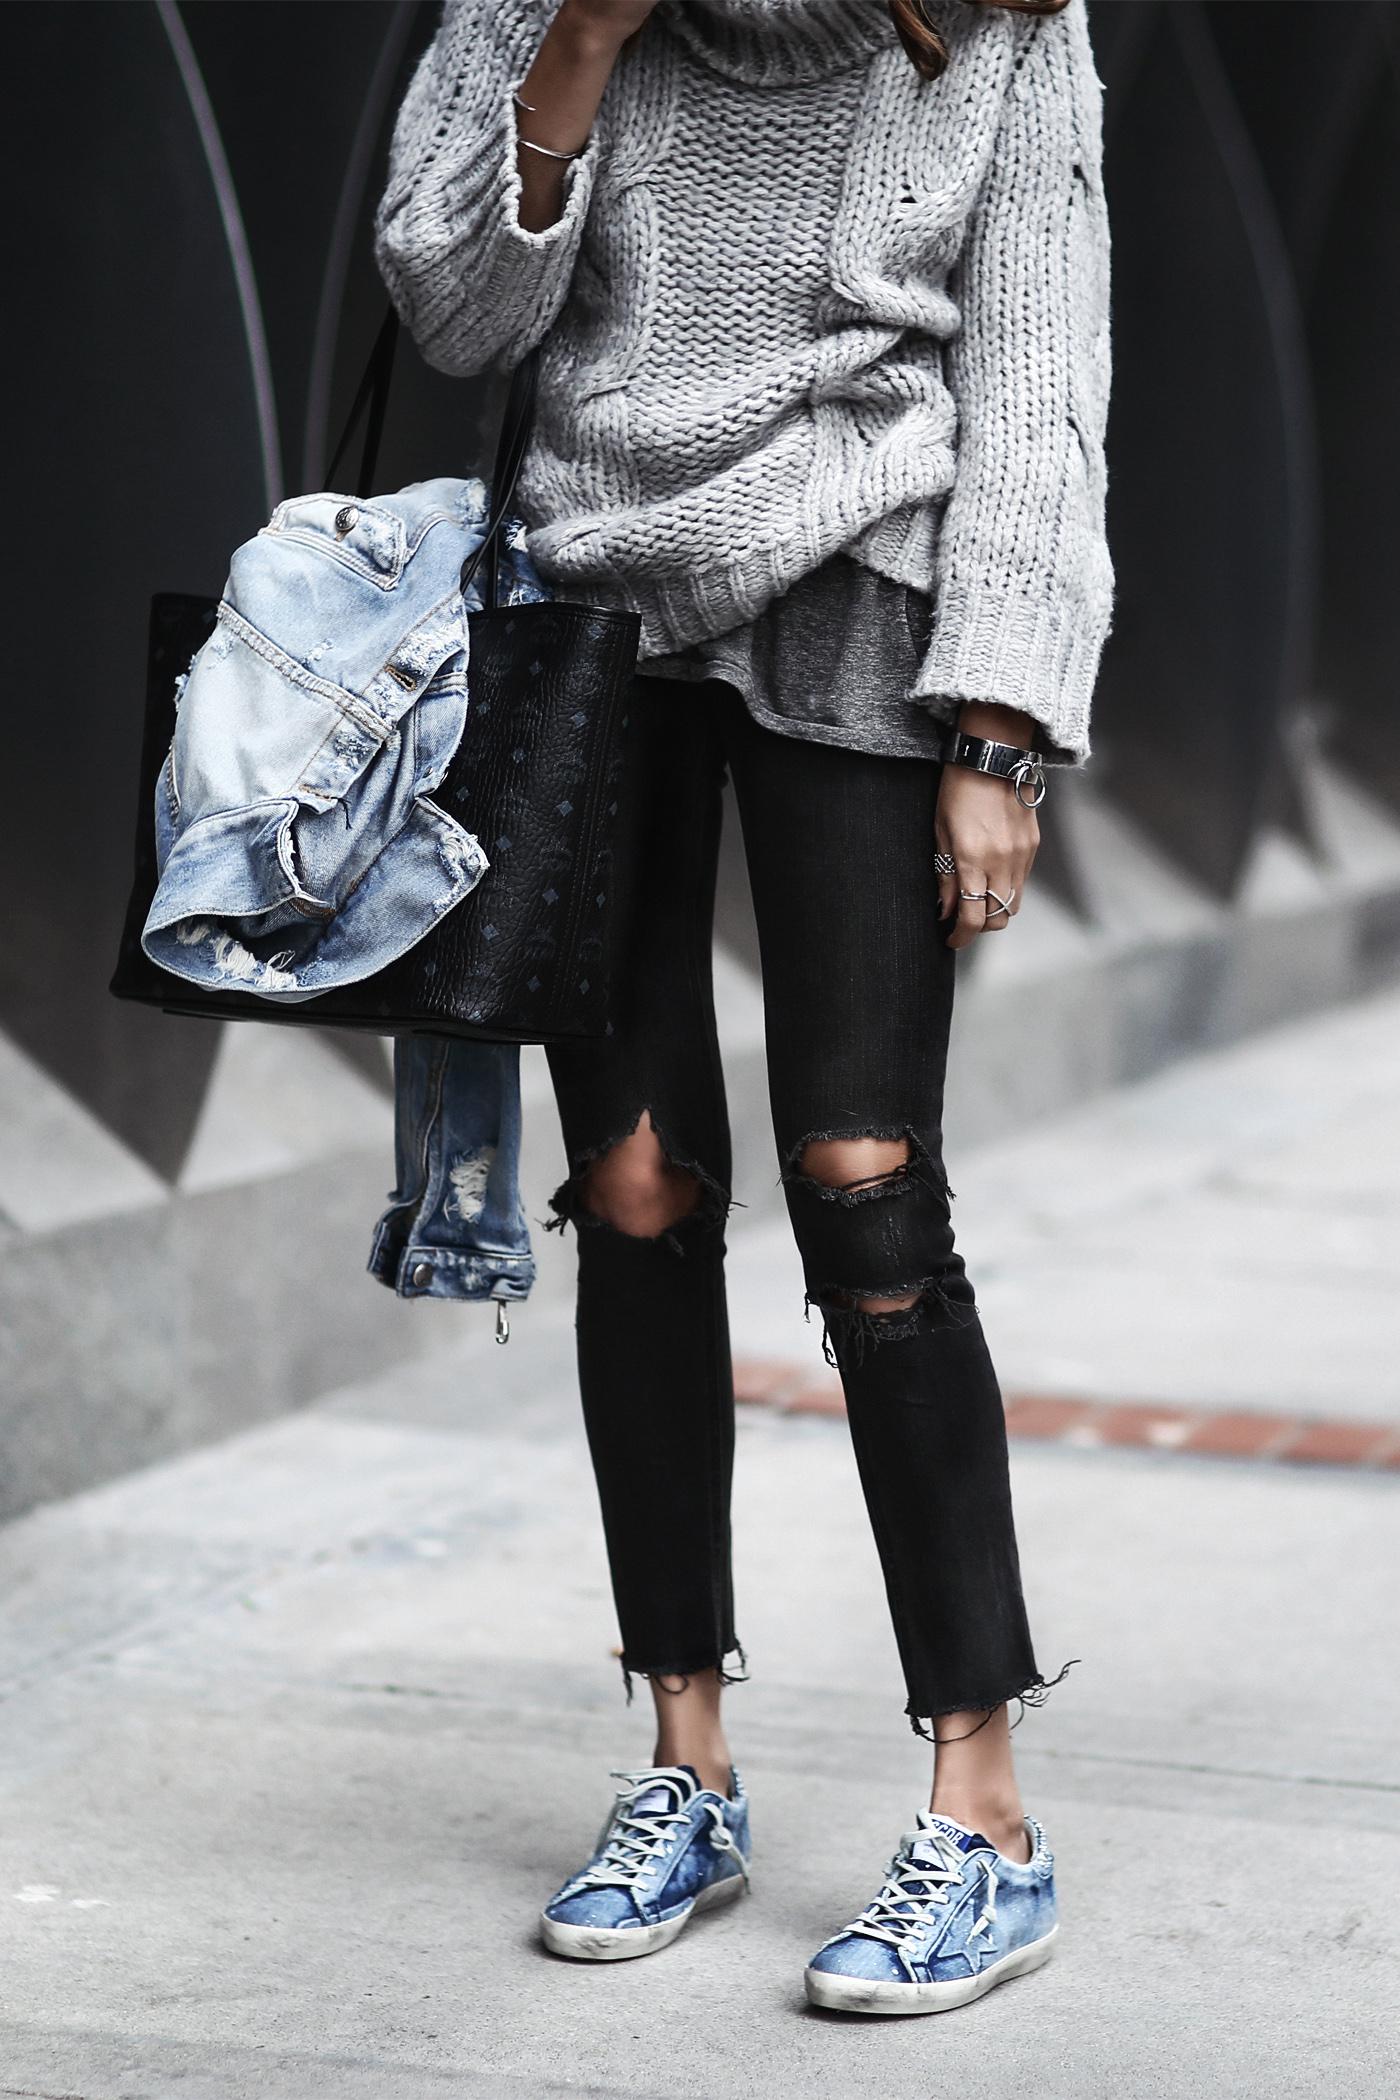 golden goose sneakers, black ripped jeans, oversized sweater, denim jacket